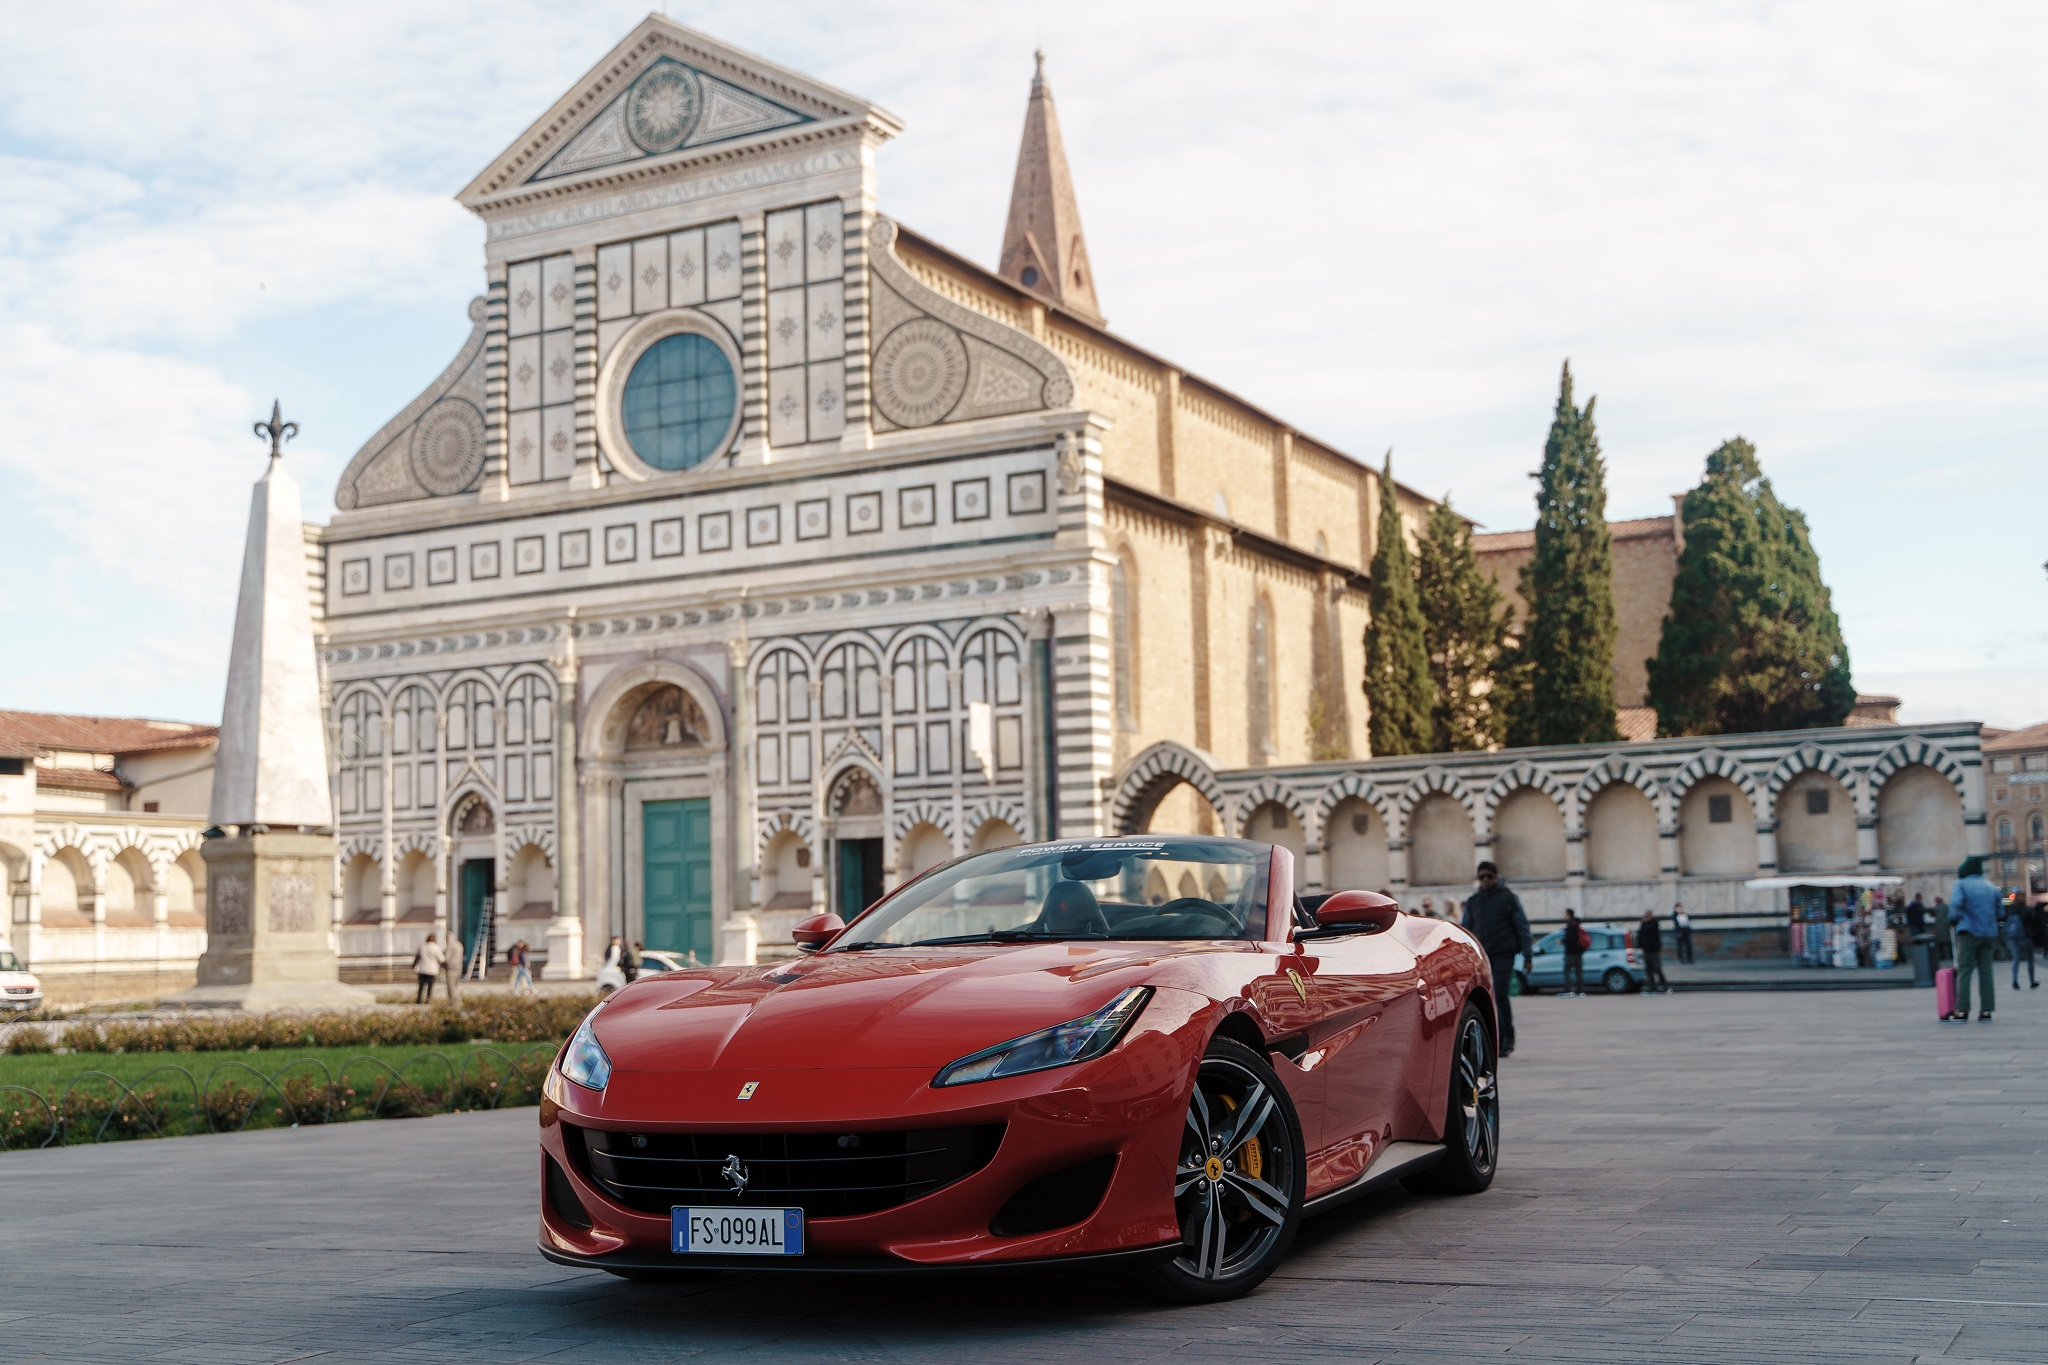 Rent your luxury car in Florence - Power Service Luxury Car Hire